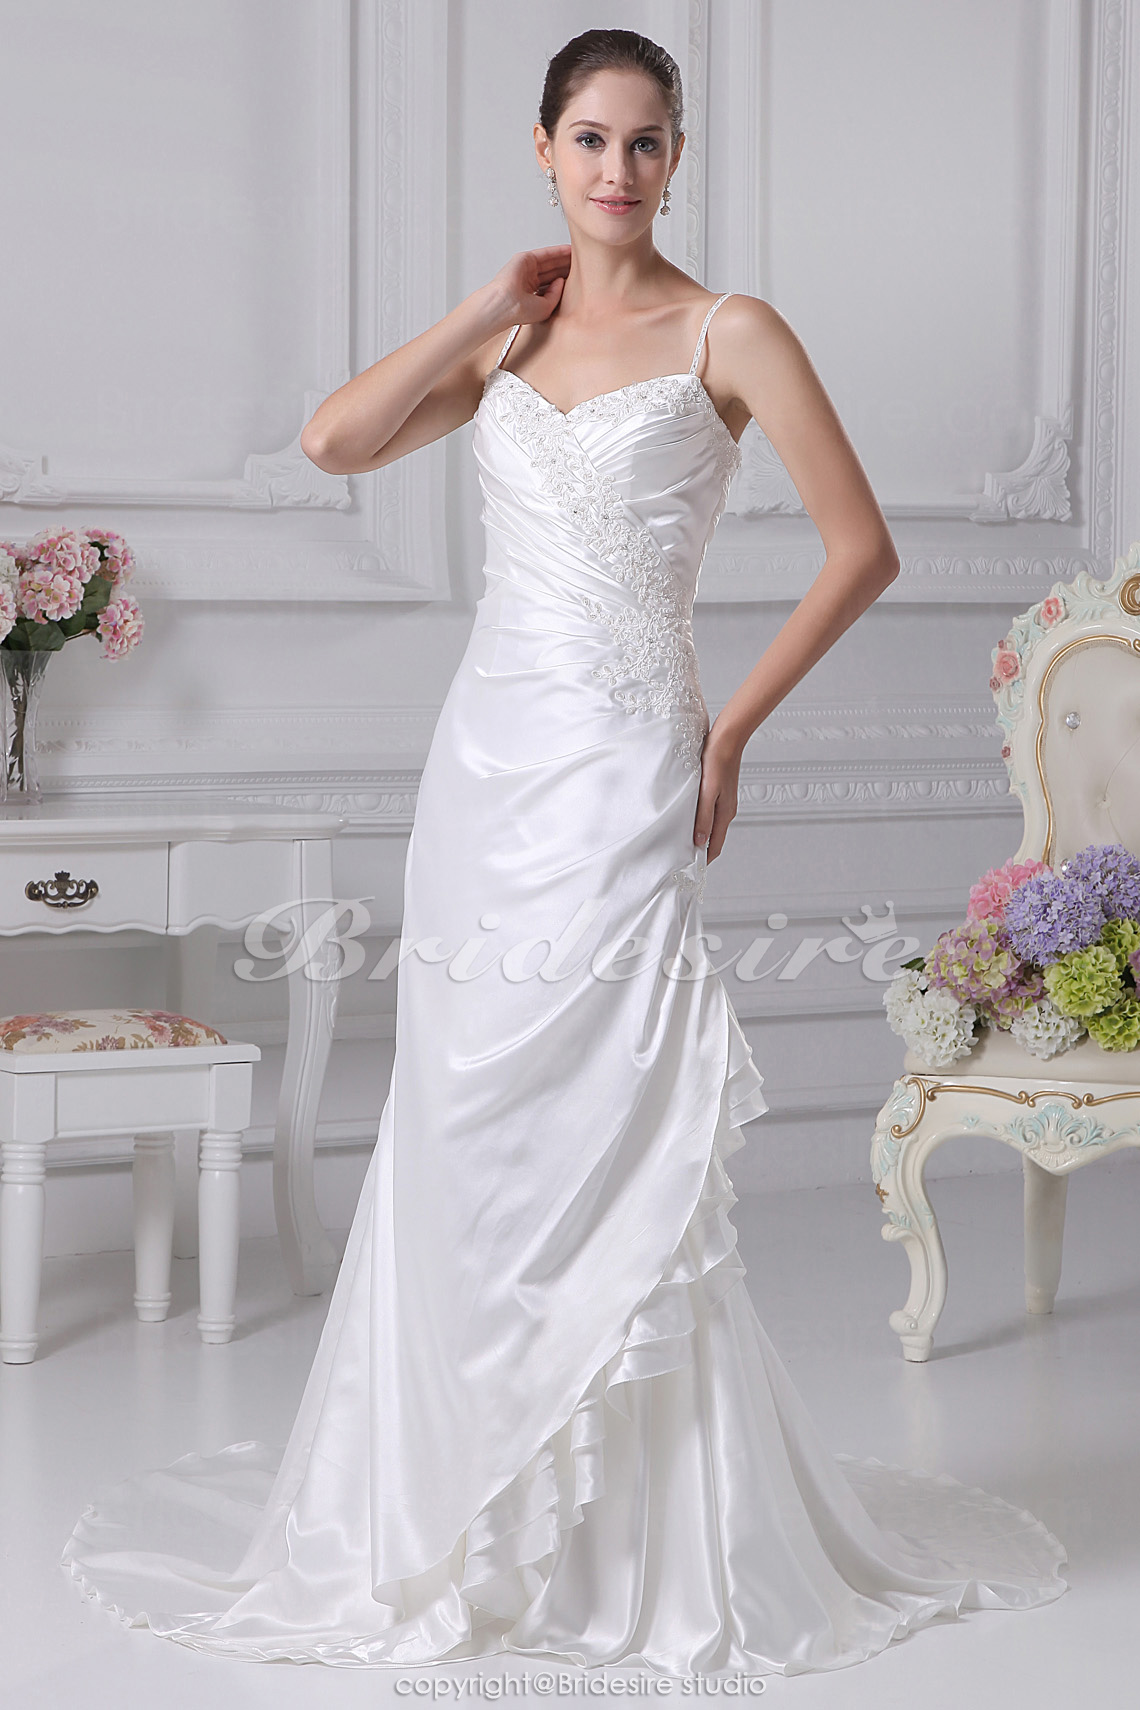 Trumpet/Mermaid Sweetheart Spaghetti Straps Chapel Train Sleeveless Stretch Satin Wedding Dress